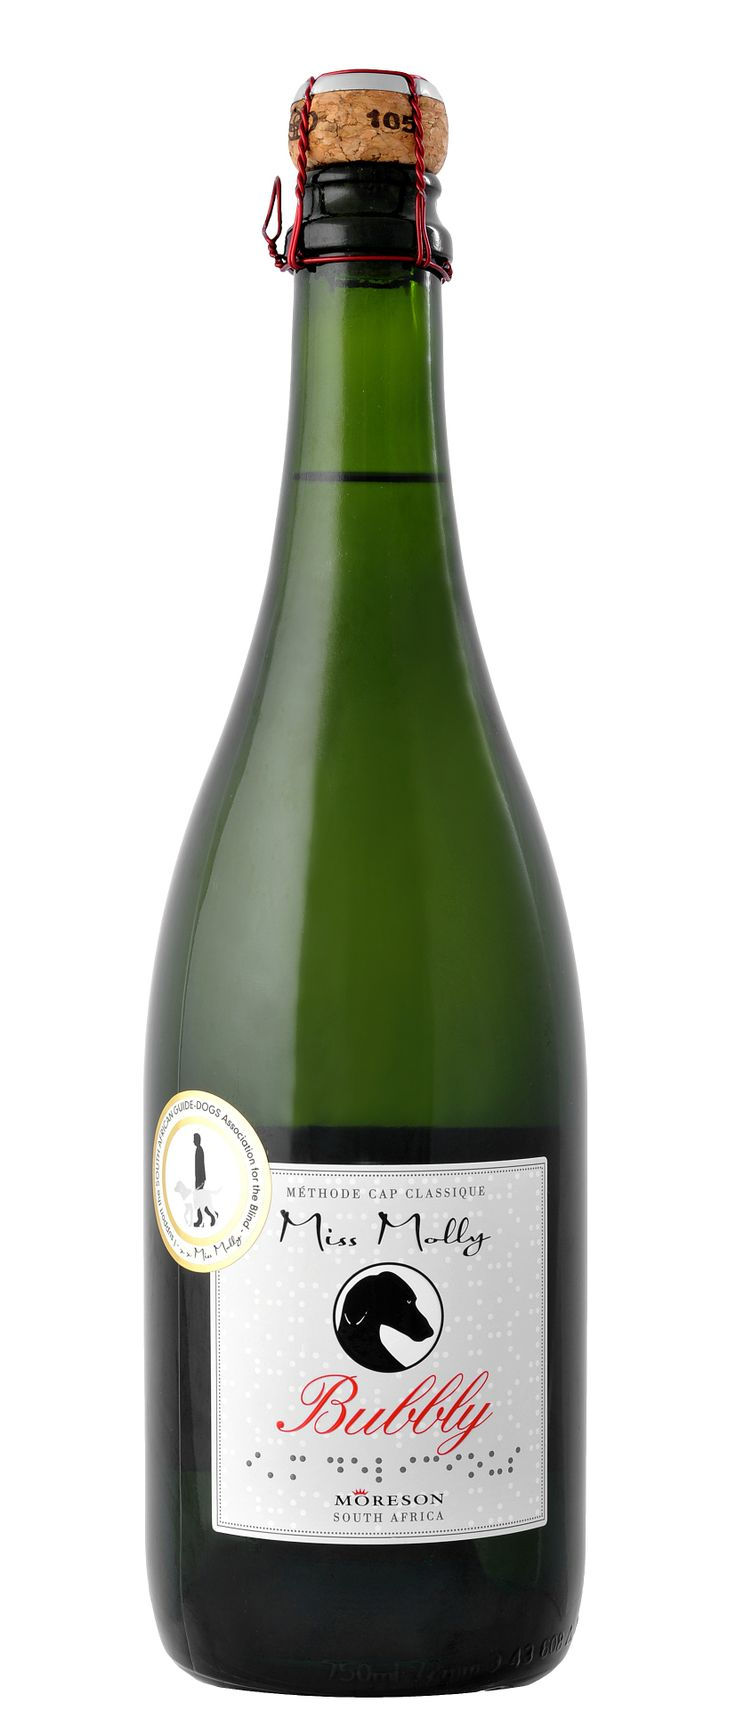 Miss Molly Bubbly - this is a fabulous traditionally made sparkling wine from South Africa. Lively and delightful.